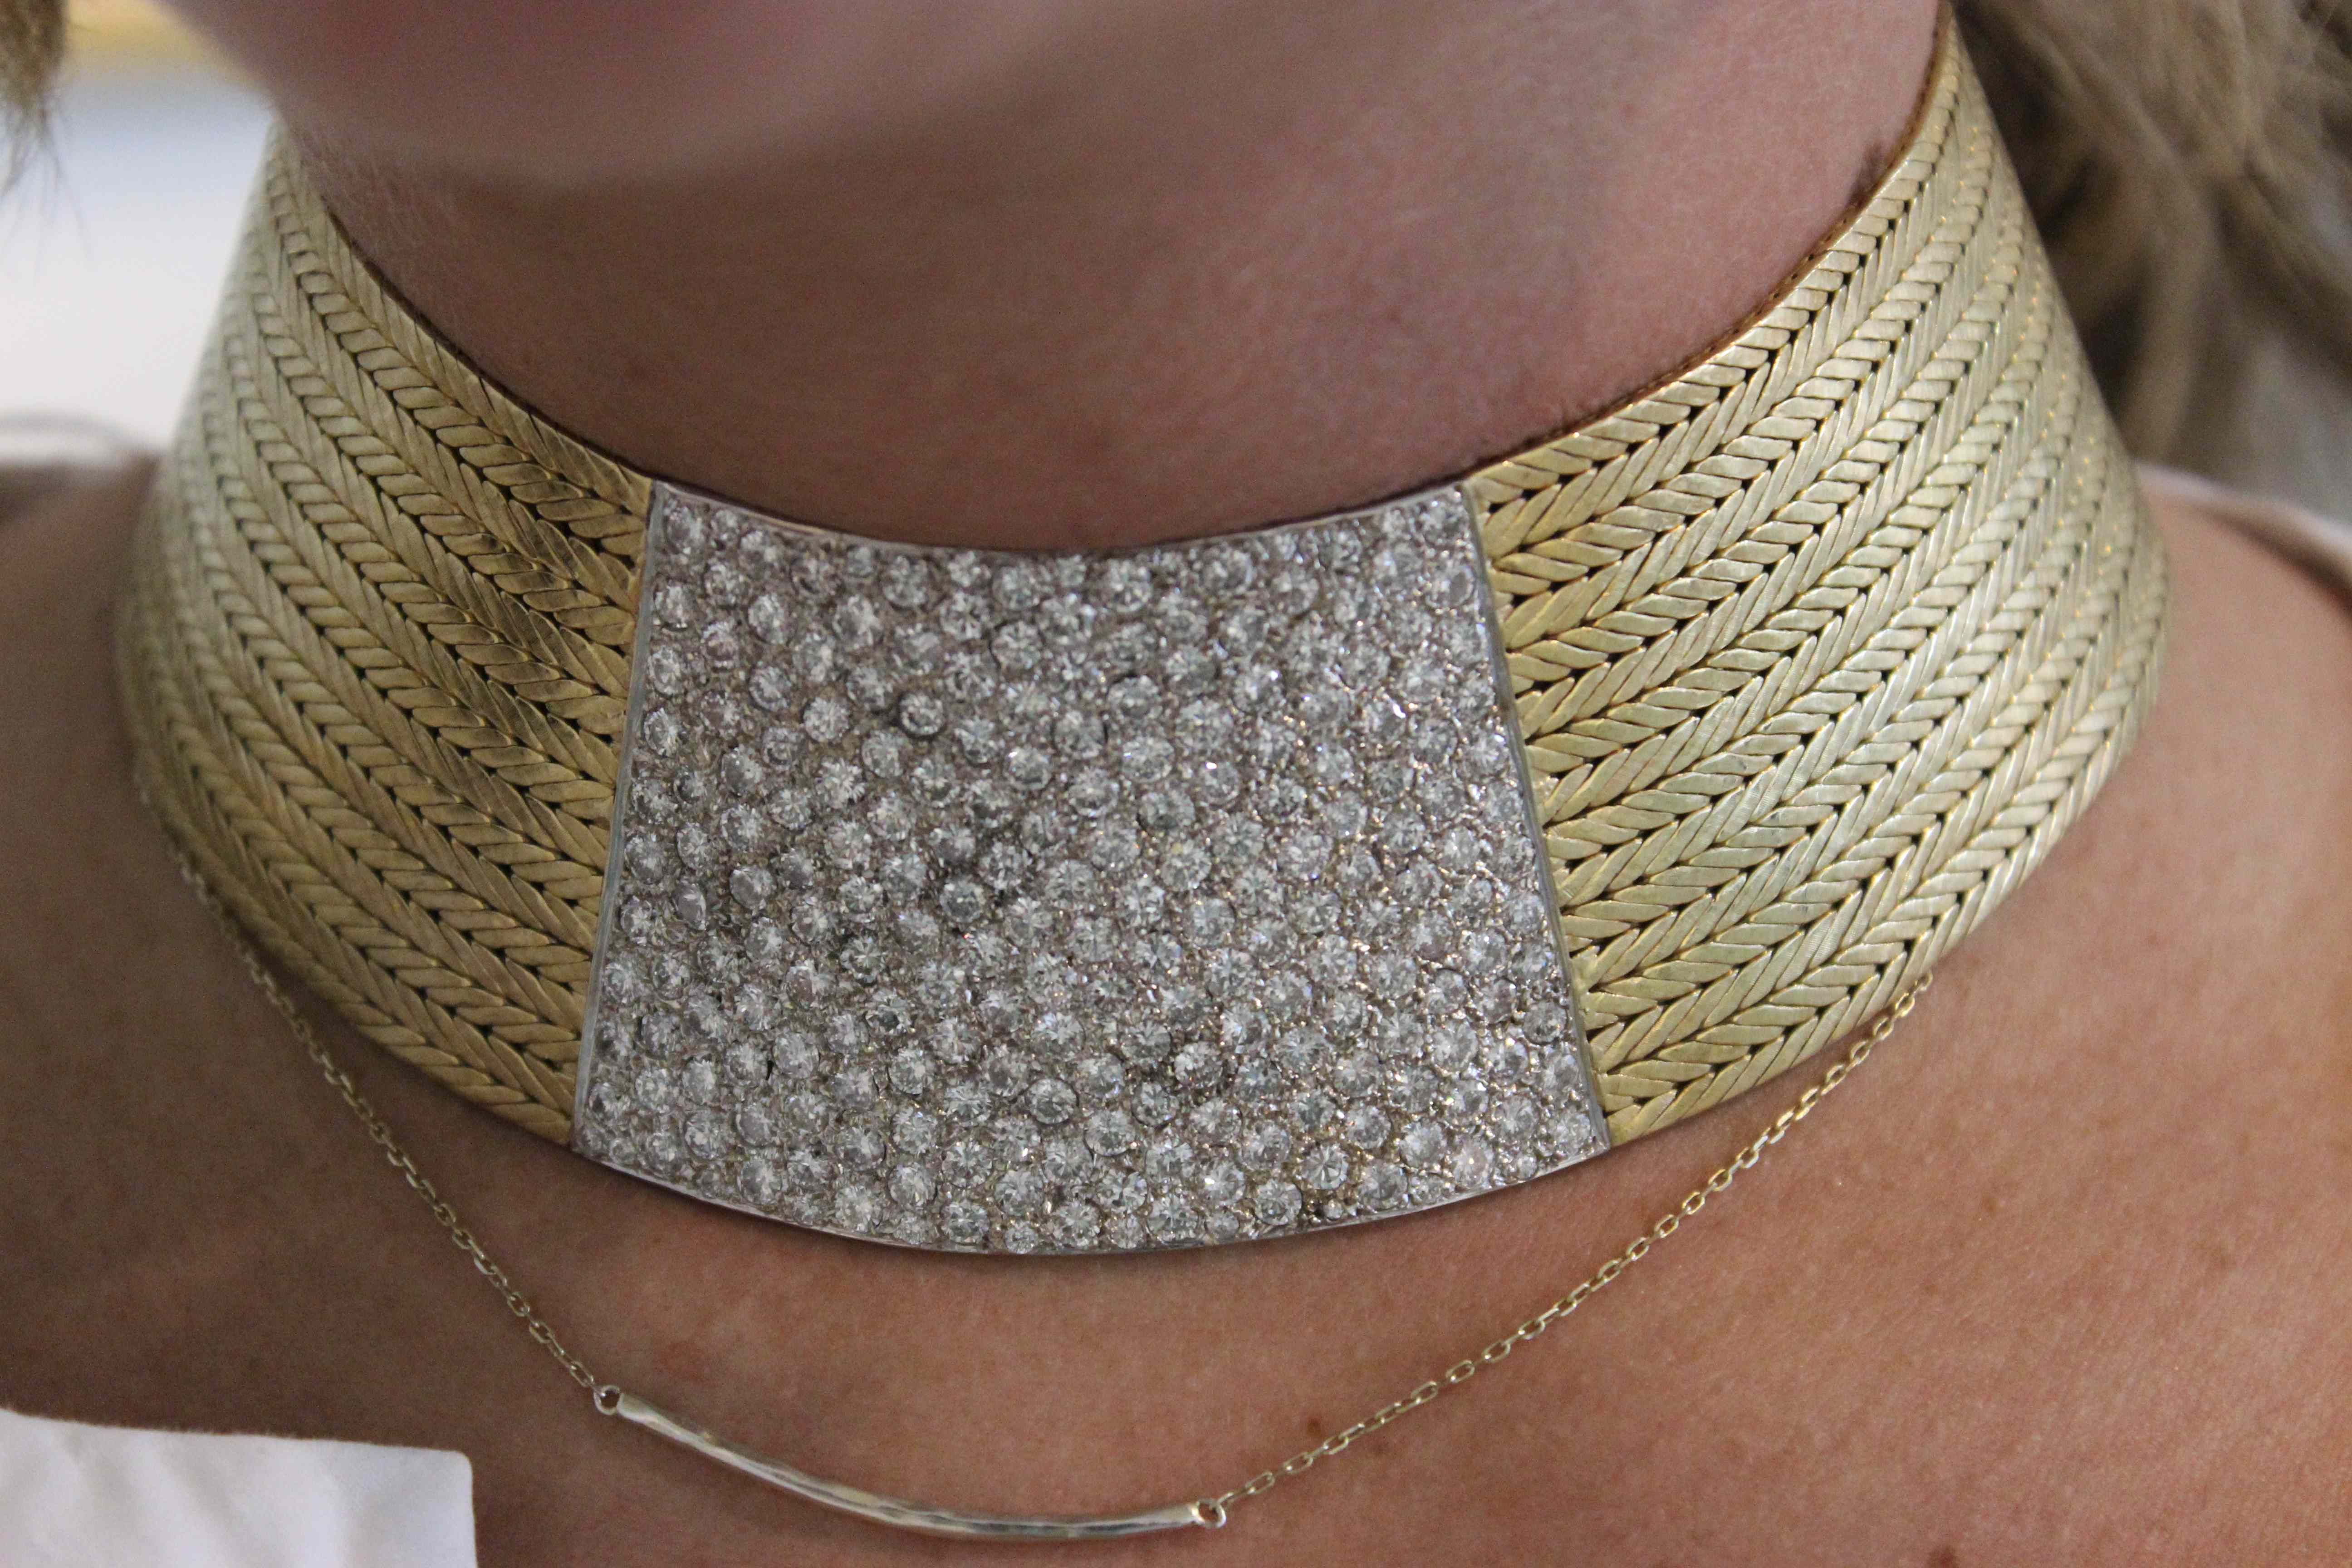 Diamon Collar Necklace about $25,000. Model - Katie Ryan. Photo by Kate Frankenberg.